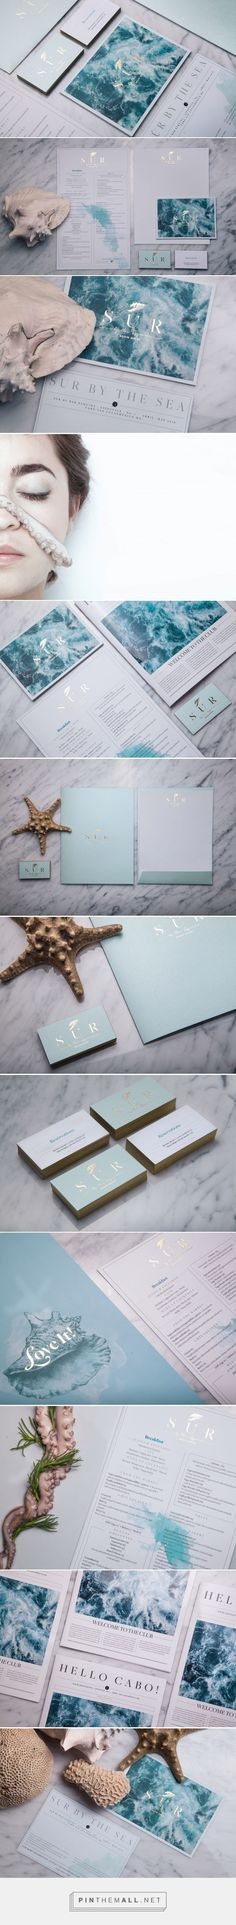 SUR Beach House Retreat Branding by Daniel Barba | Fivestar Branding Agency – Design and Branding Agency & Curated Inspiration Gallery